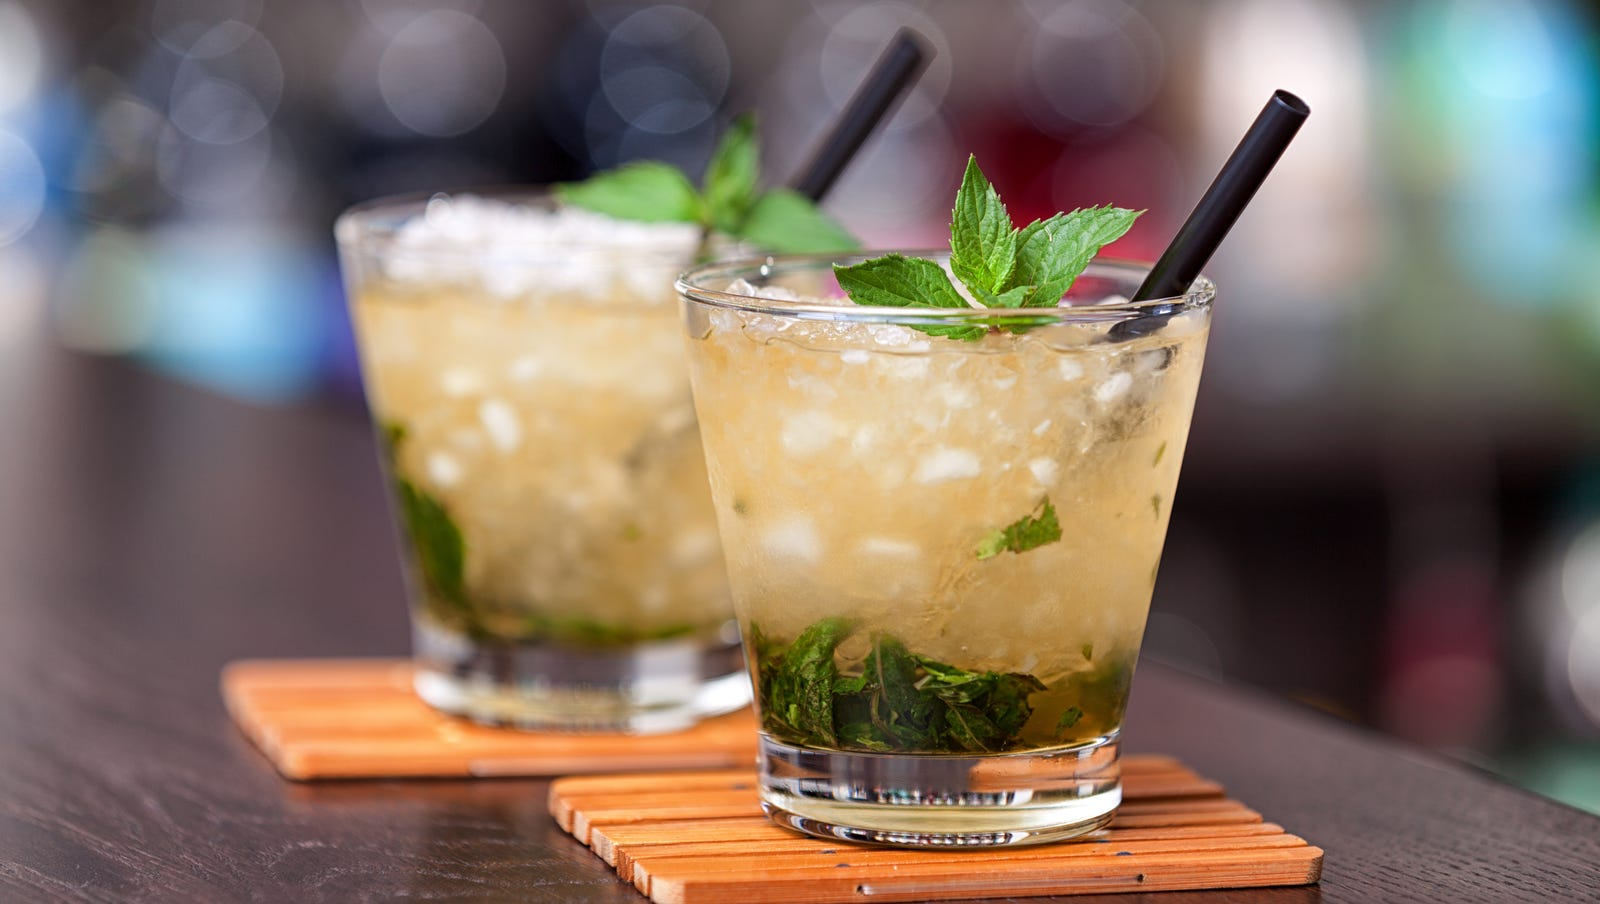 How to make a mint julep for the Kentucky Derby